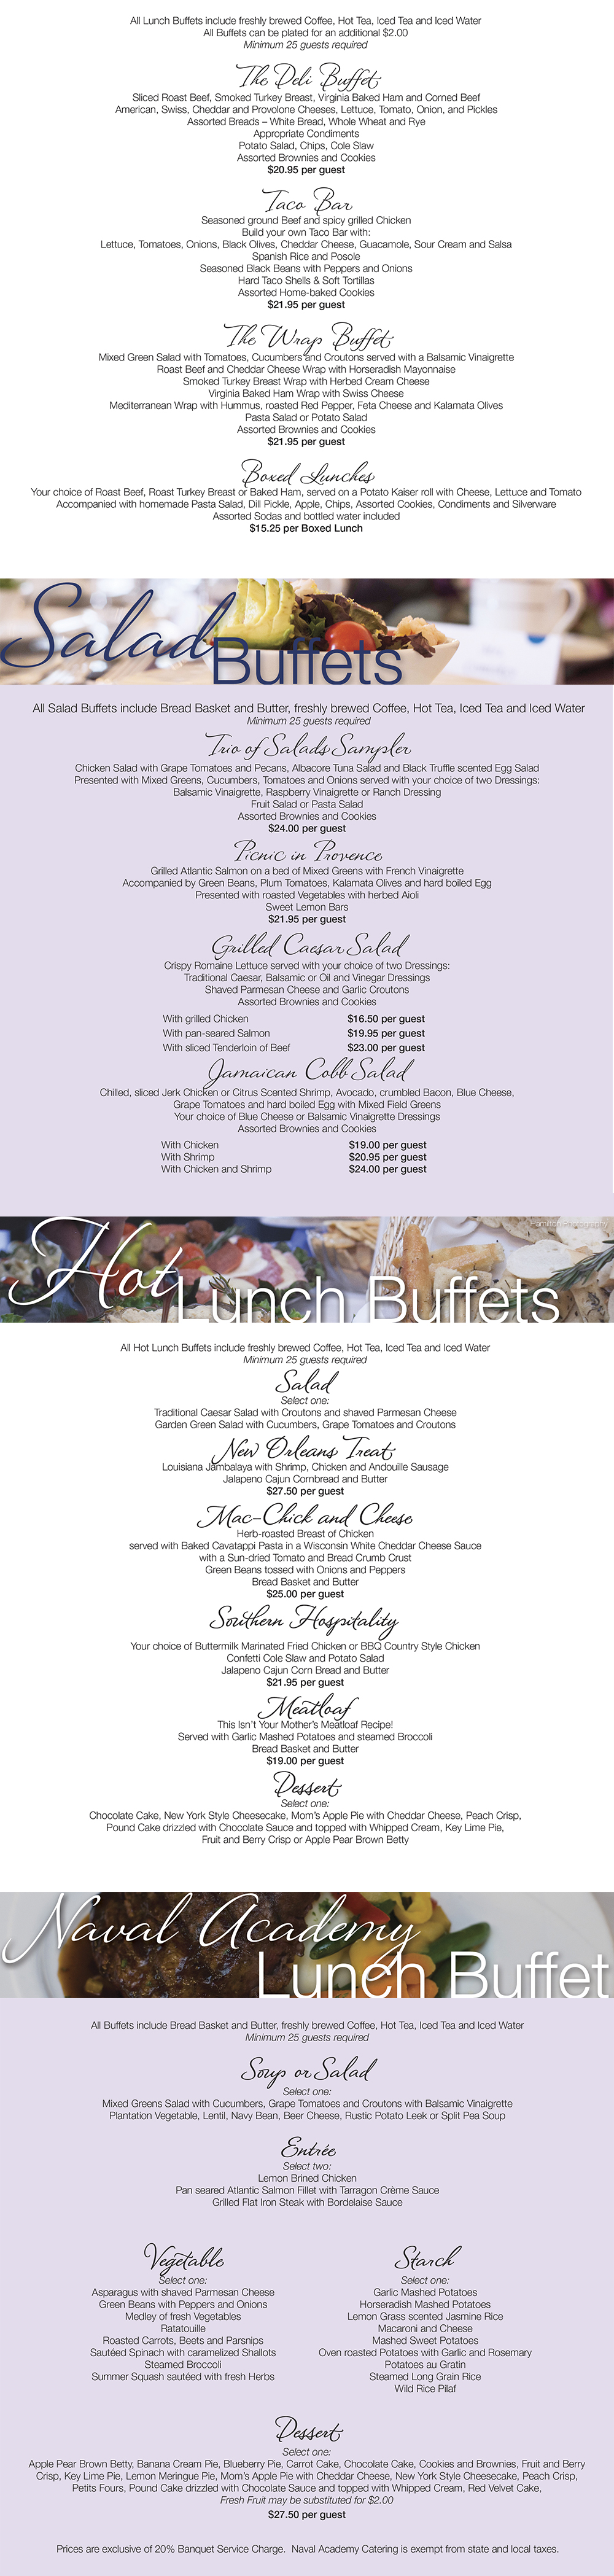 Lunch Buffets Selections 1000px